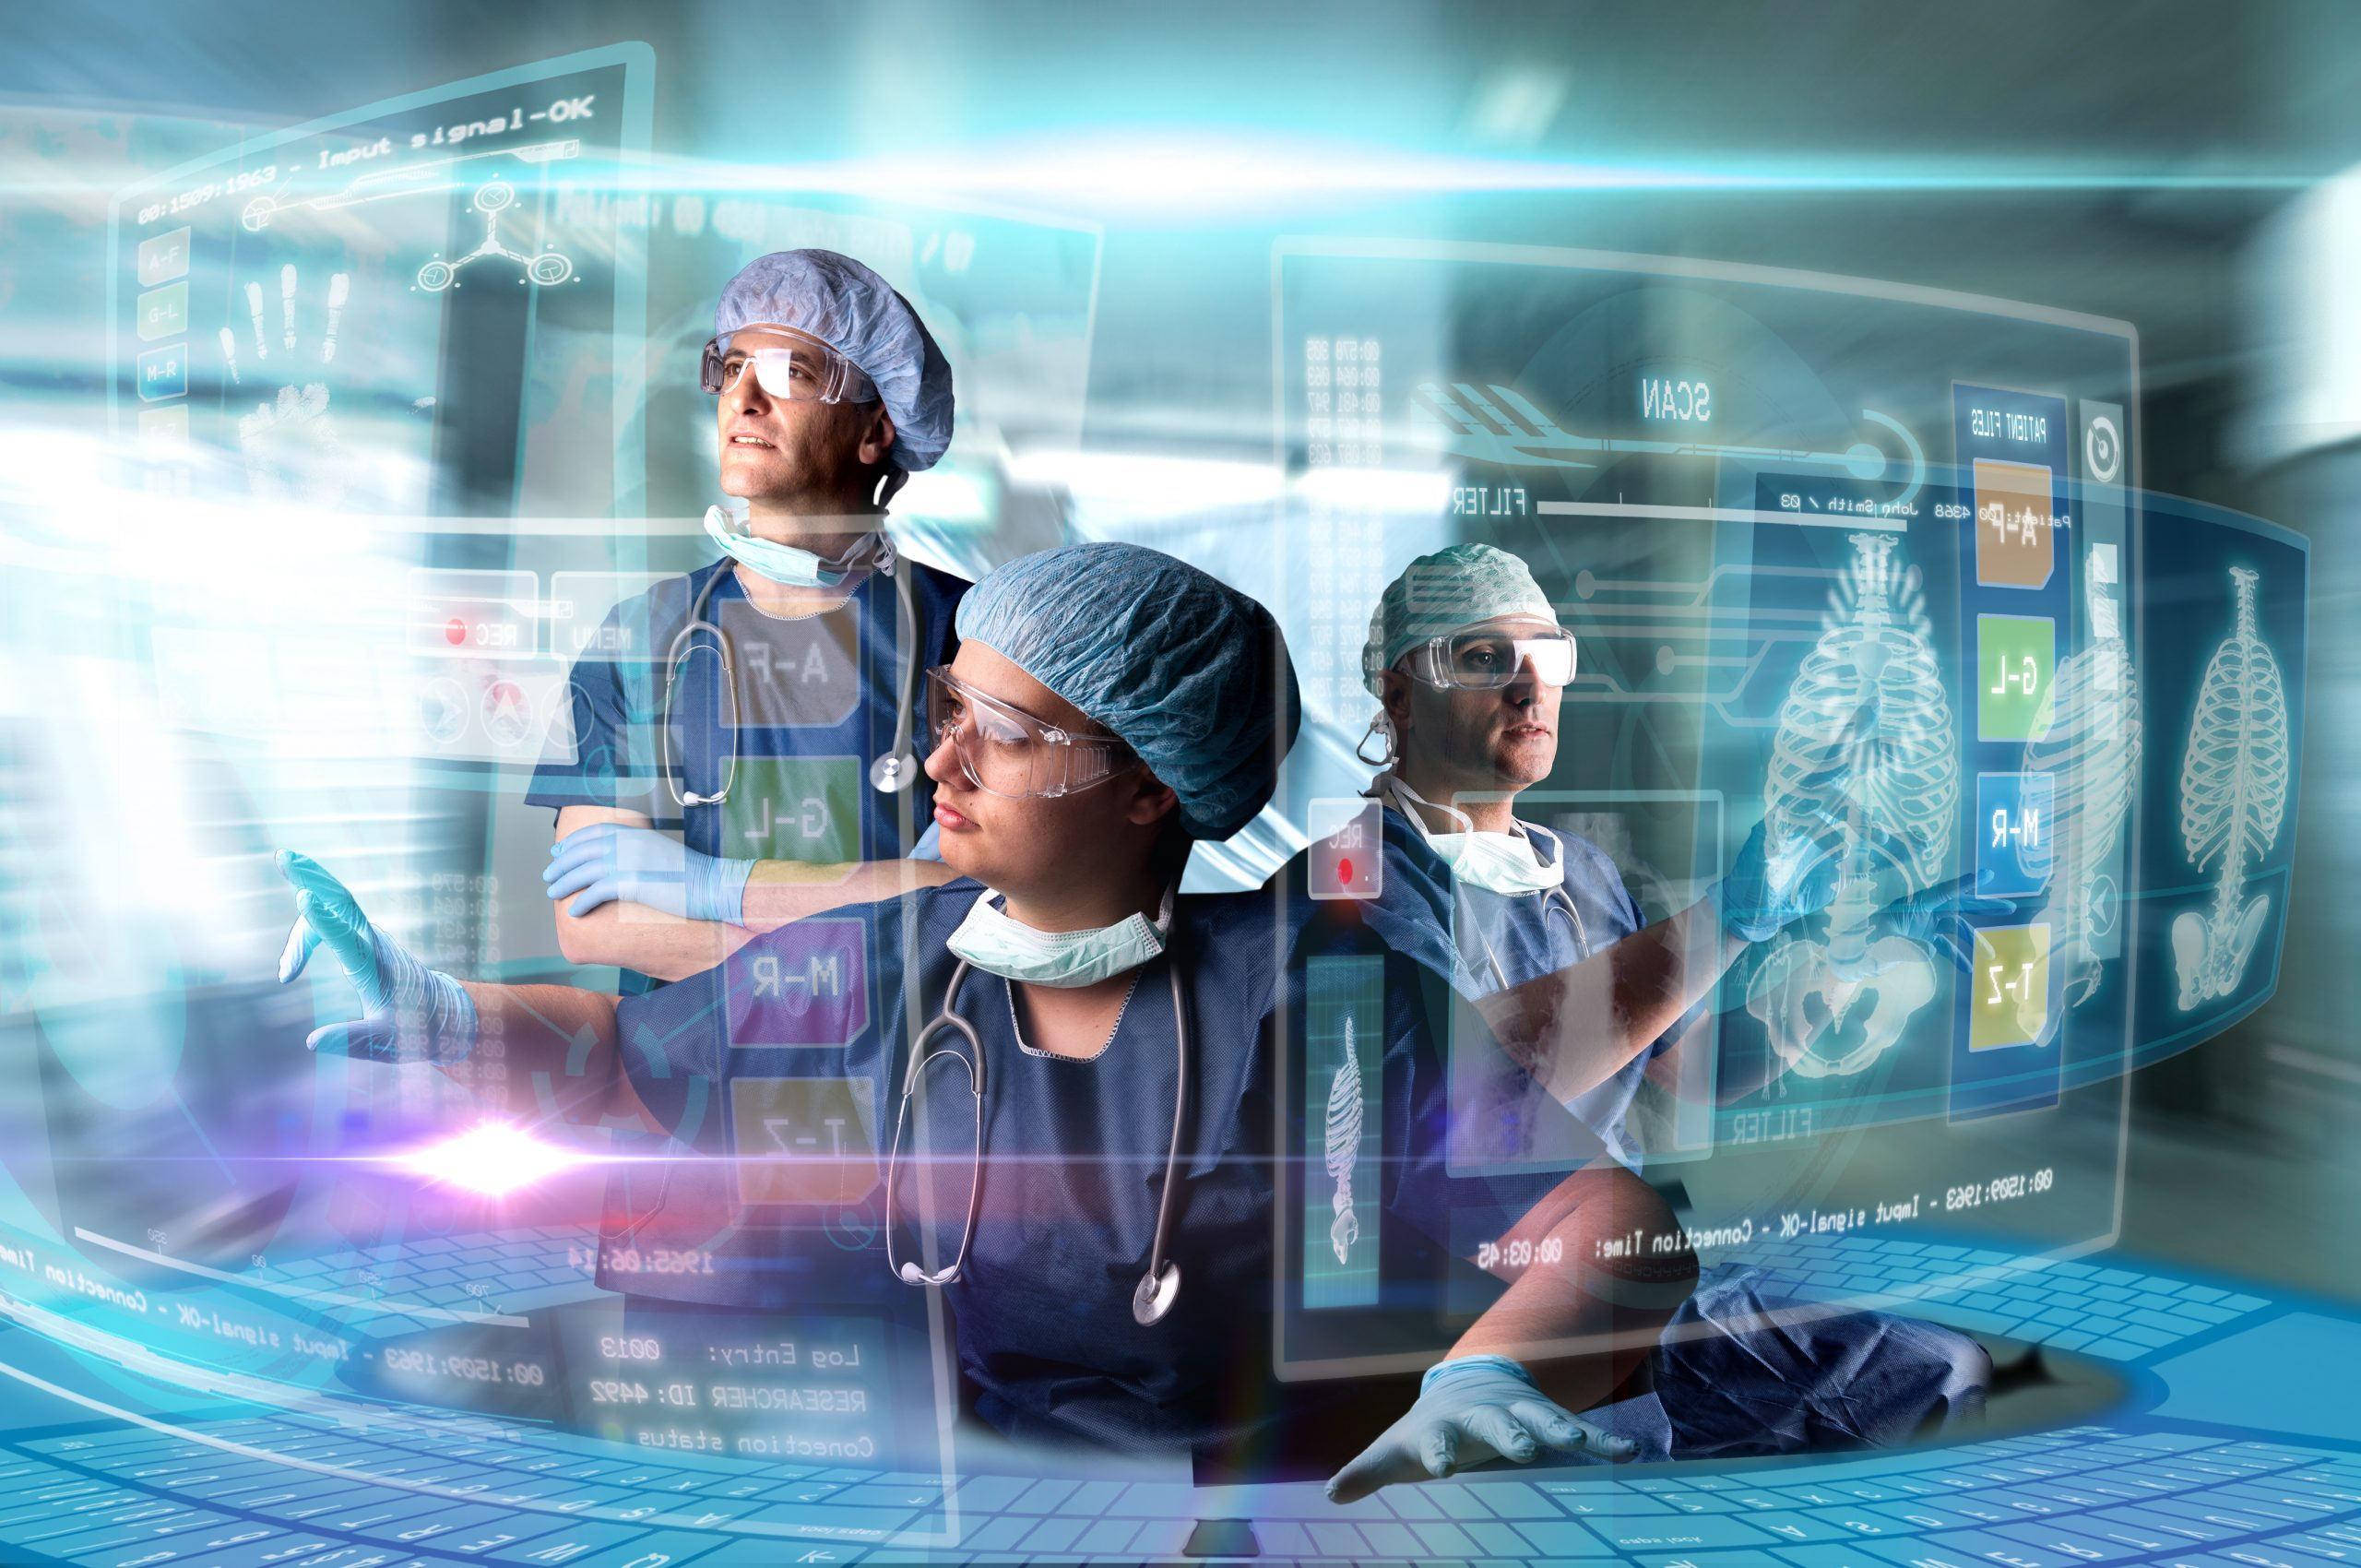 Doctors,In,A,Research,Station,With,Digital,Screens,And,Keyboard